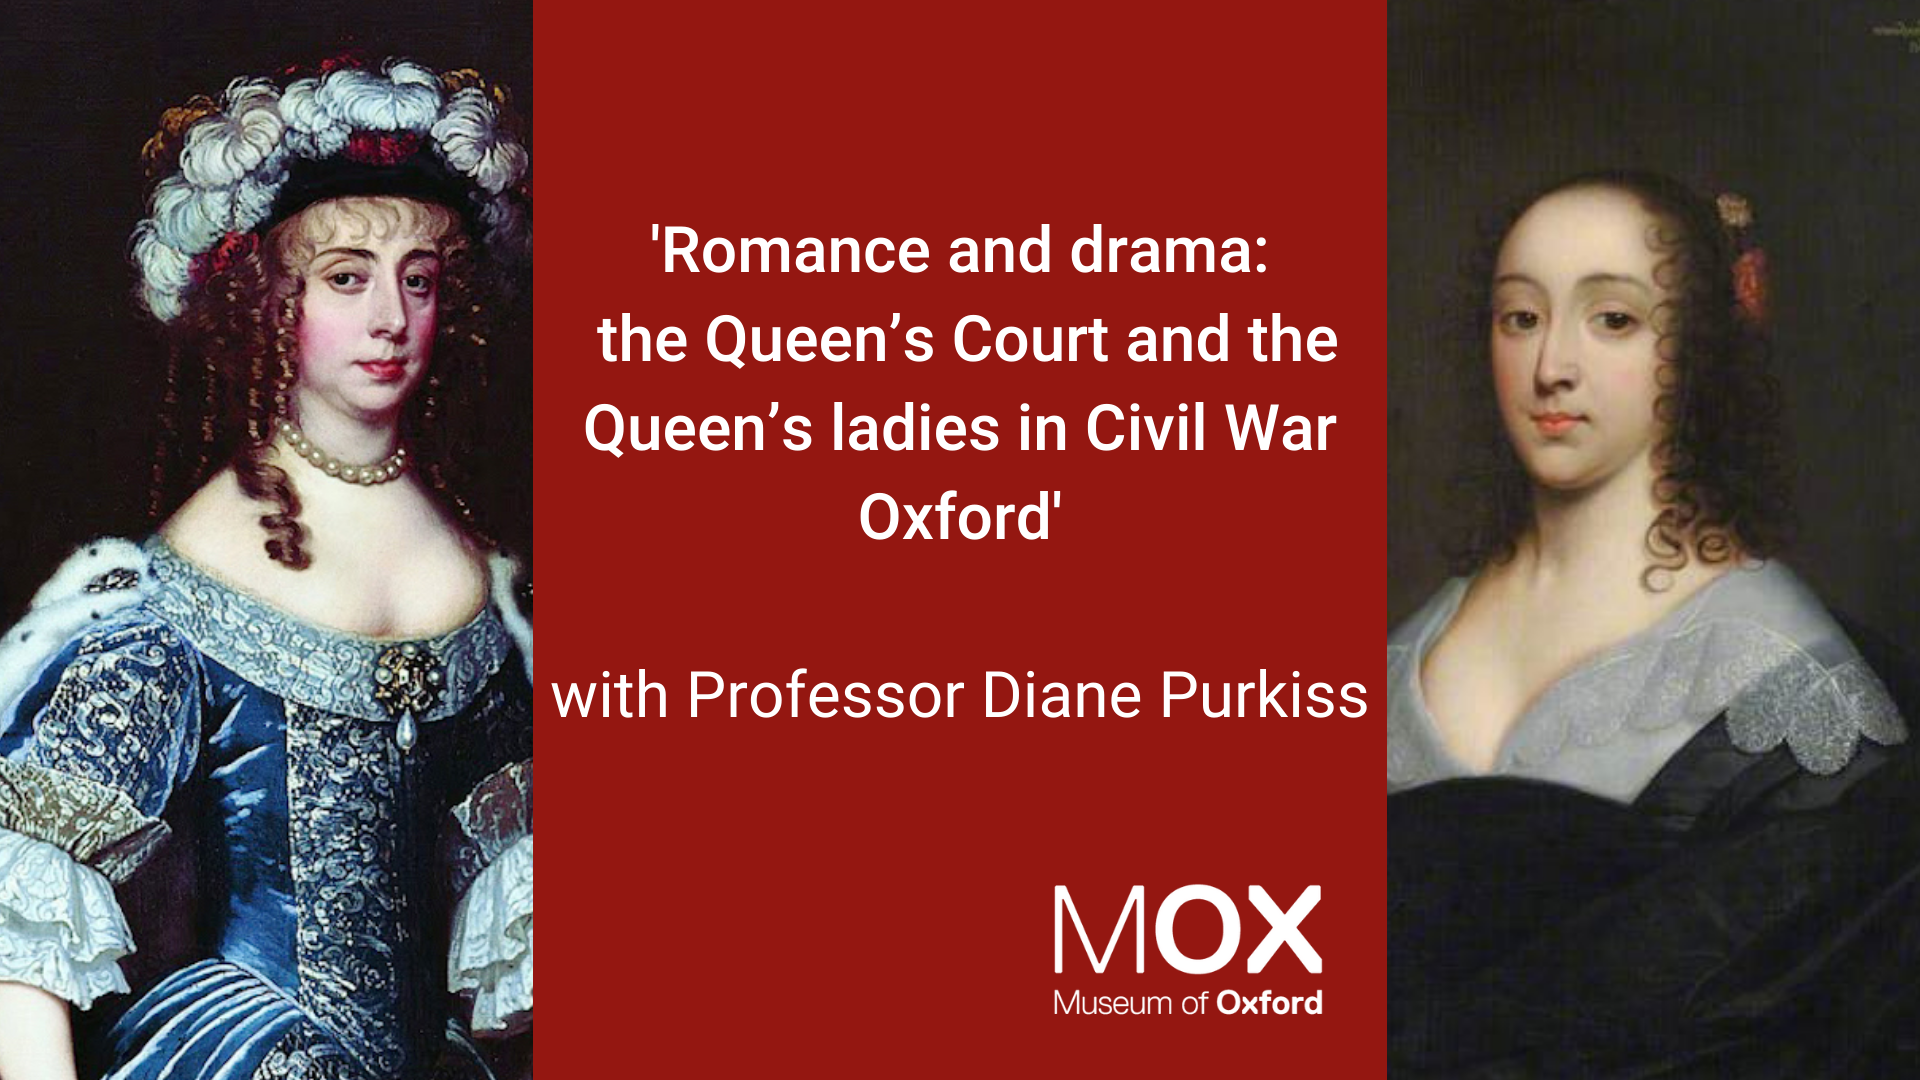 two portraits of women of the Queen's court are either side of the title of the talk plus the speaker and the Museum's logo